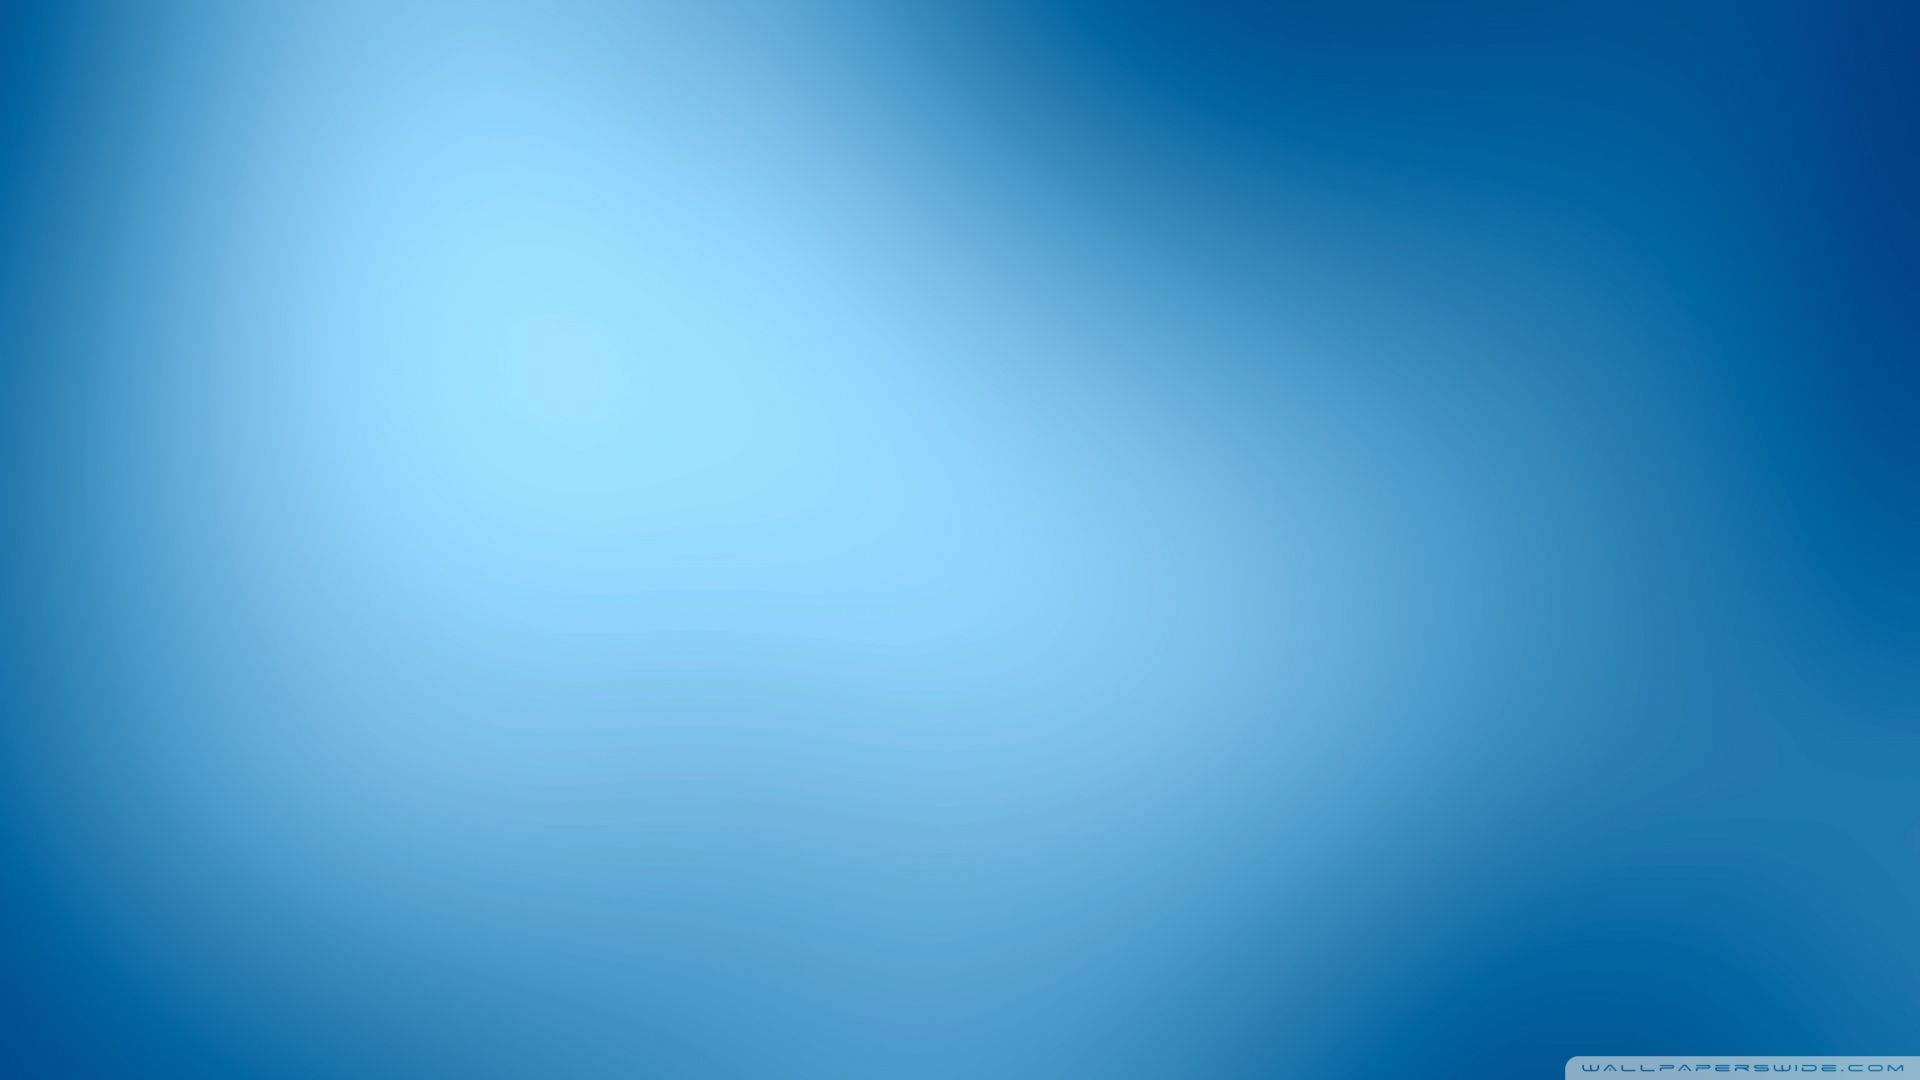 Background wallpapers on this colorful background wallpapers website - Blue Background And Wallpaper Images Abstract Grunge Paint And